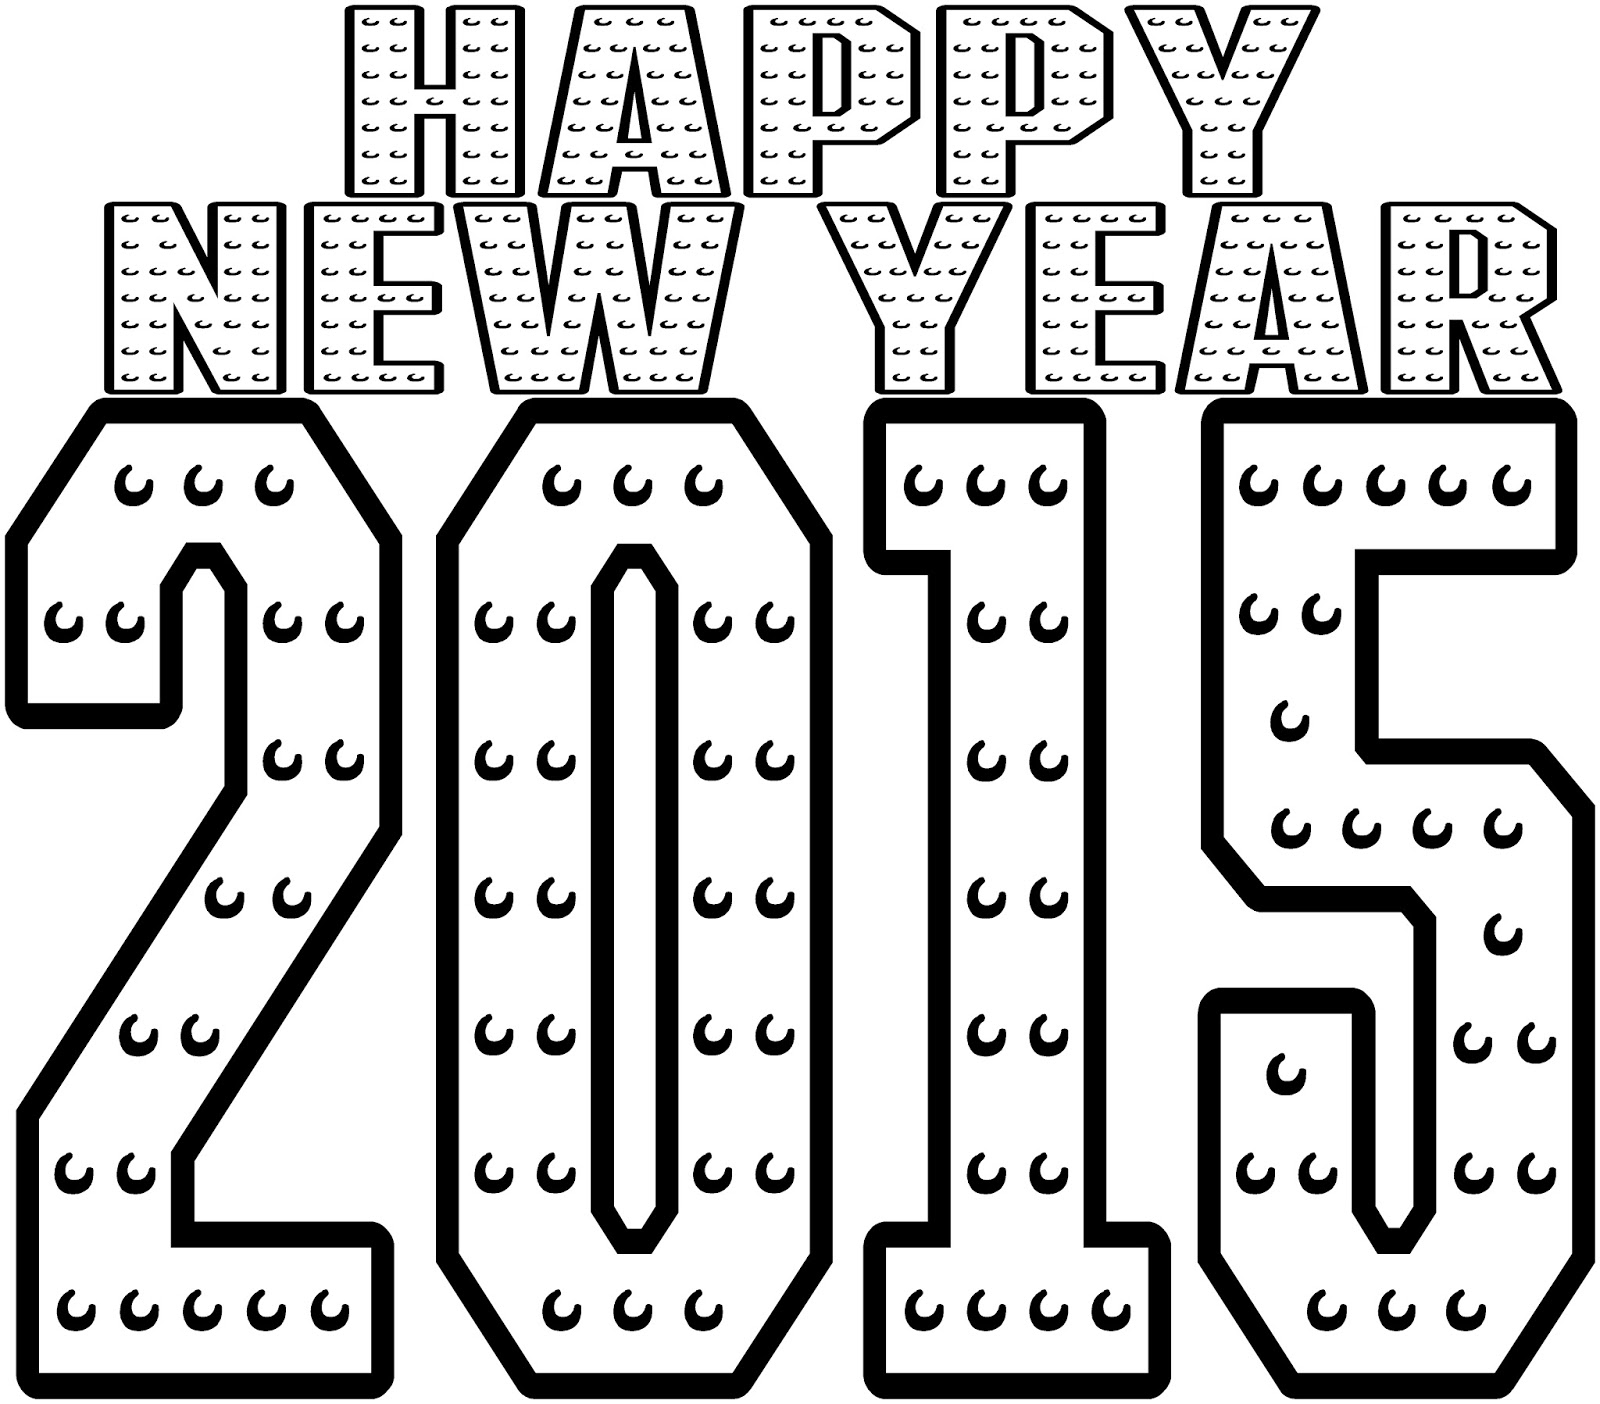 New Years Coloring Pages 2016 at GetDrawings.com | Free for ...